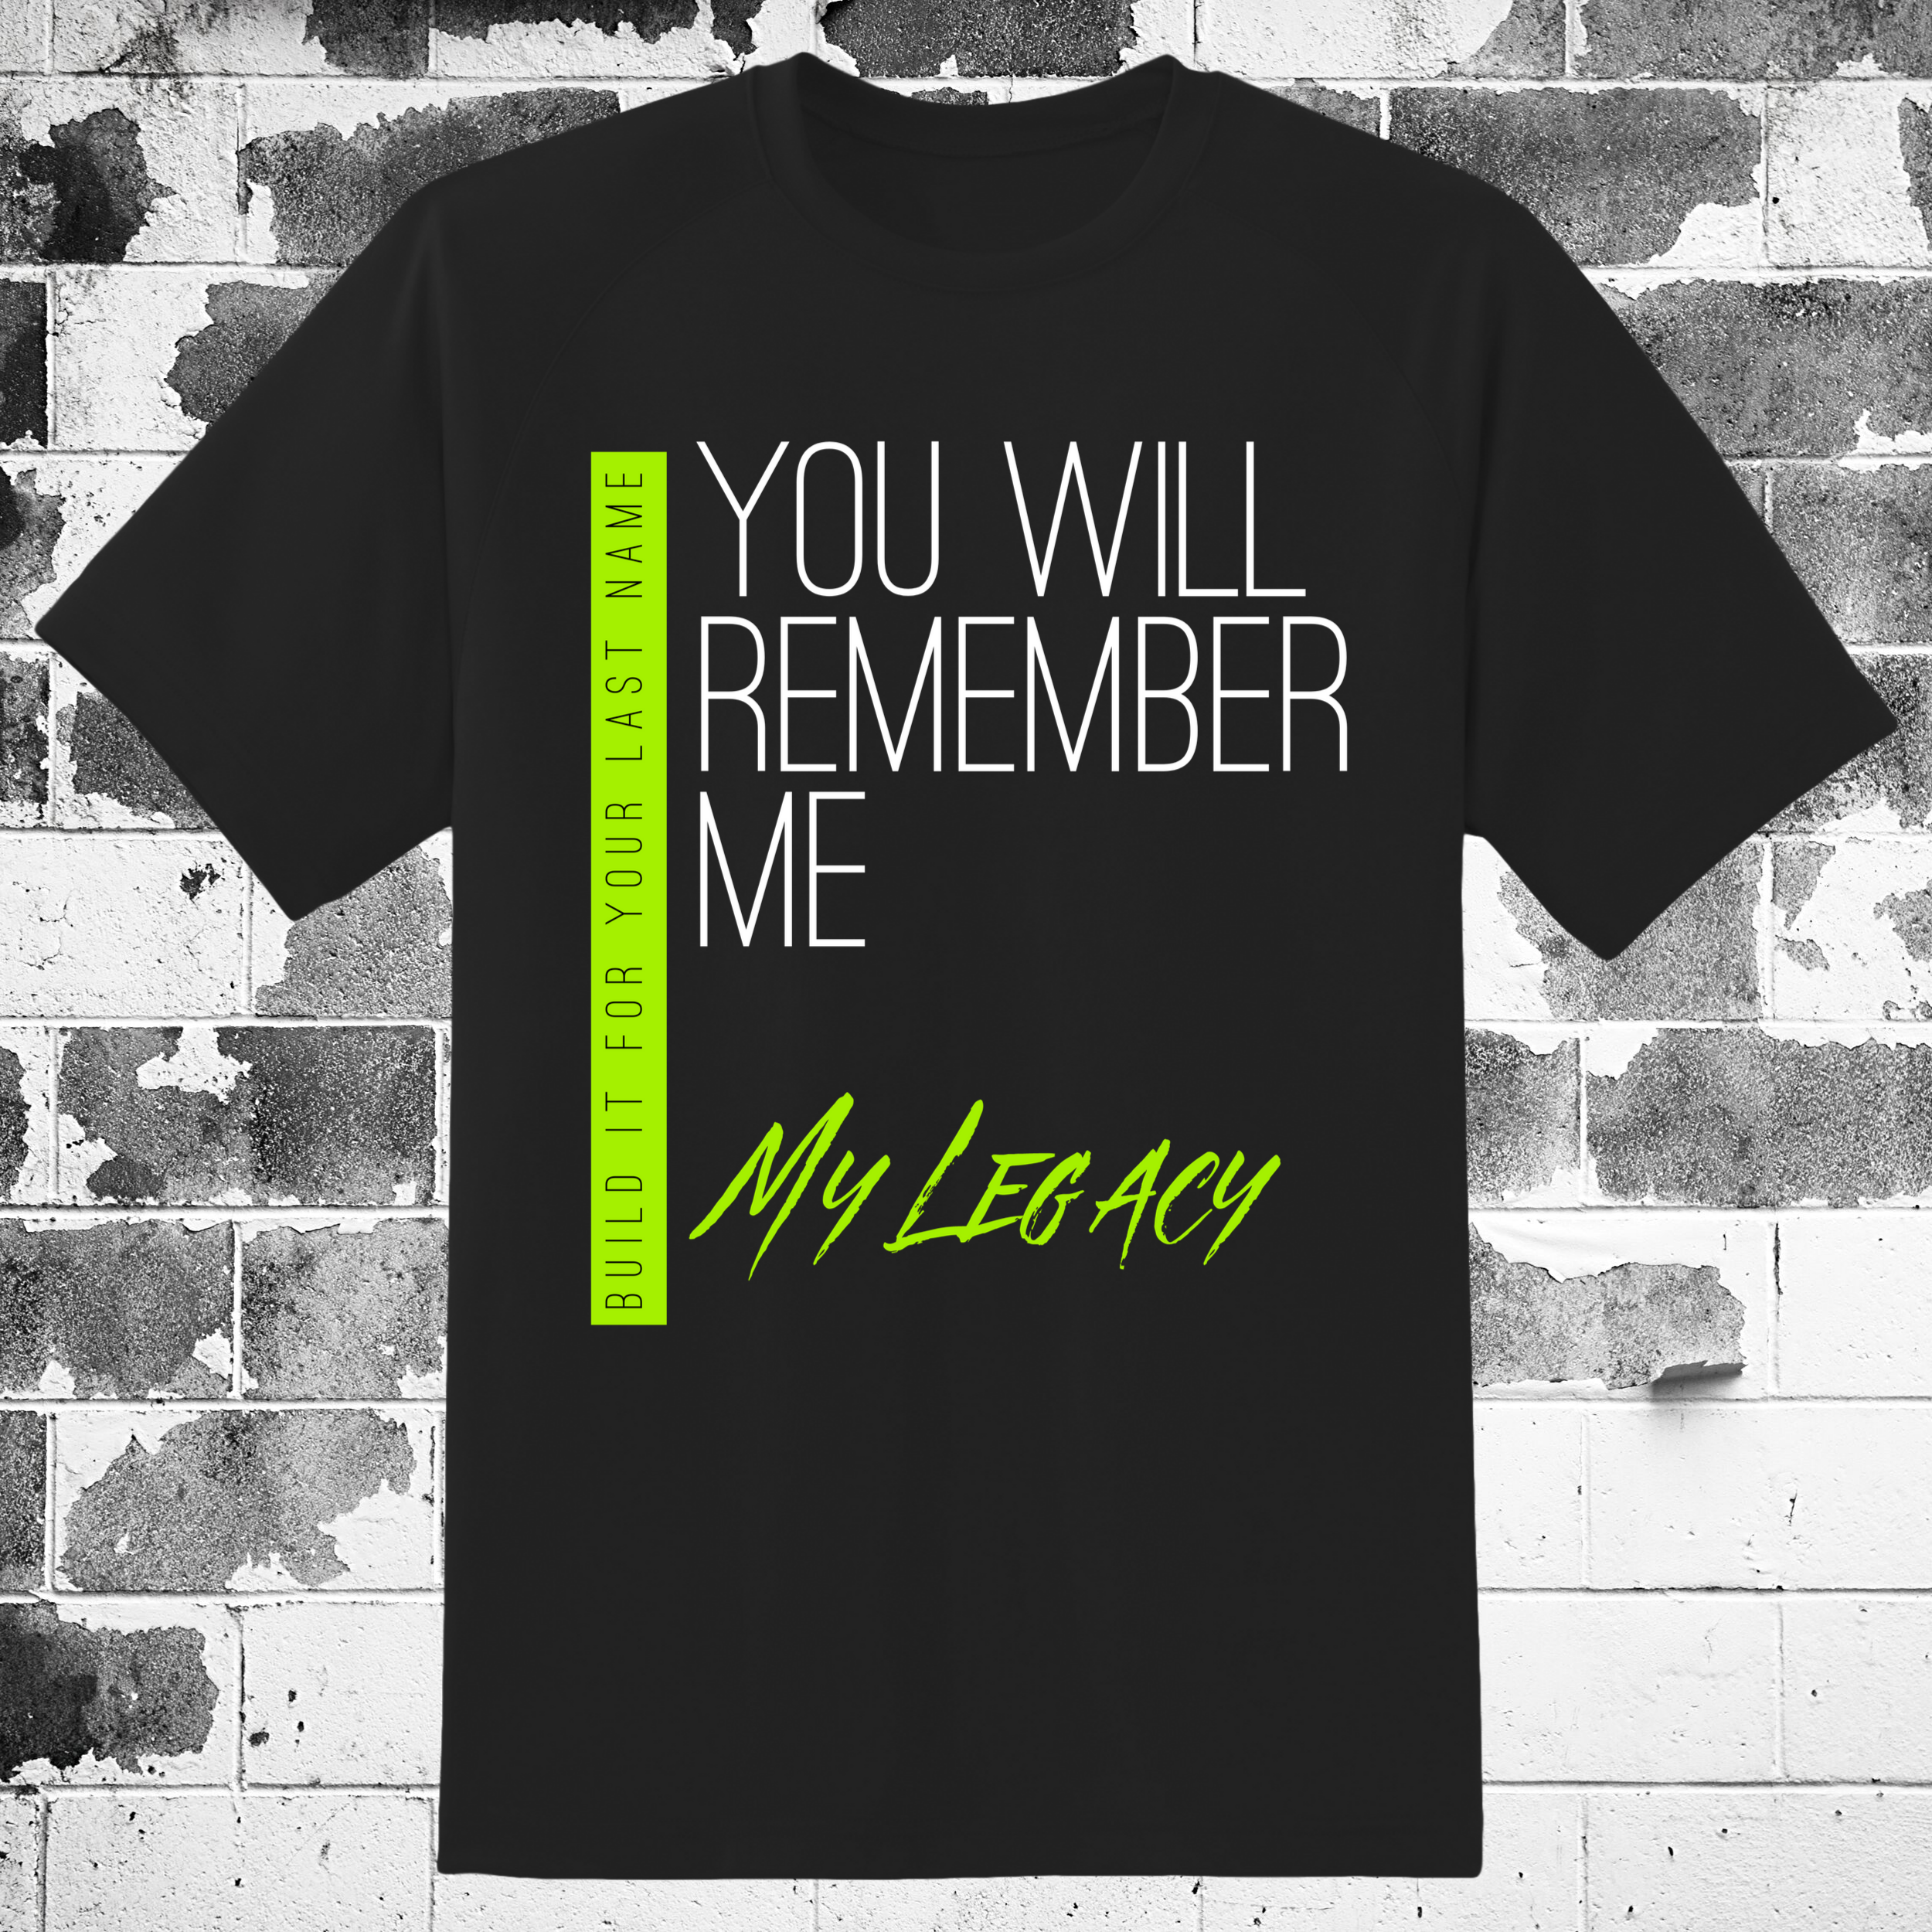 REMEMBER ME TSHIRT